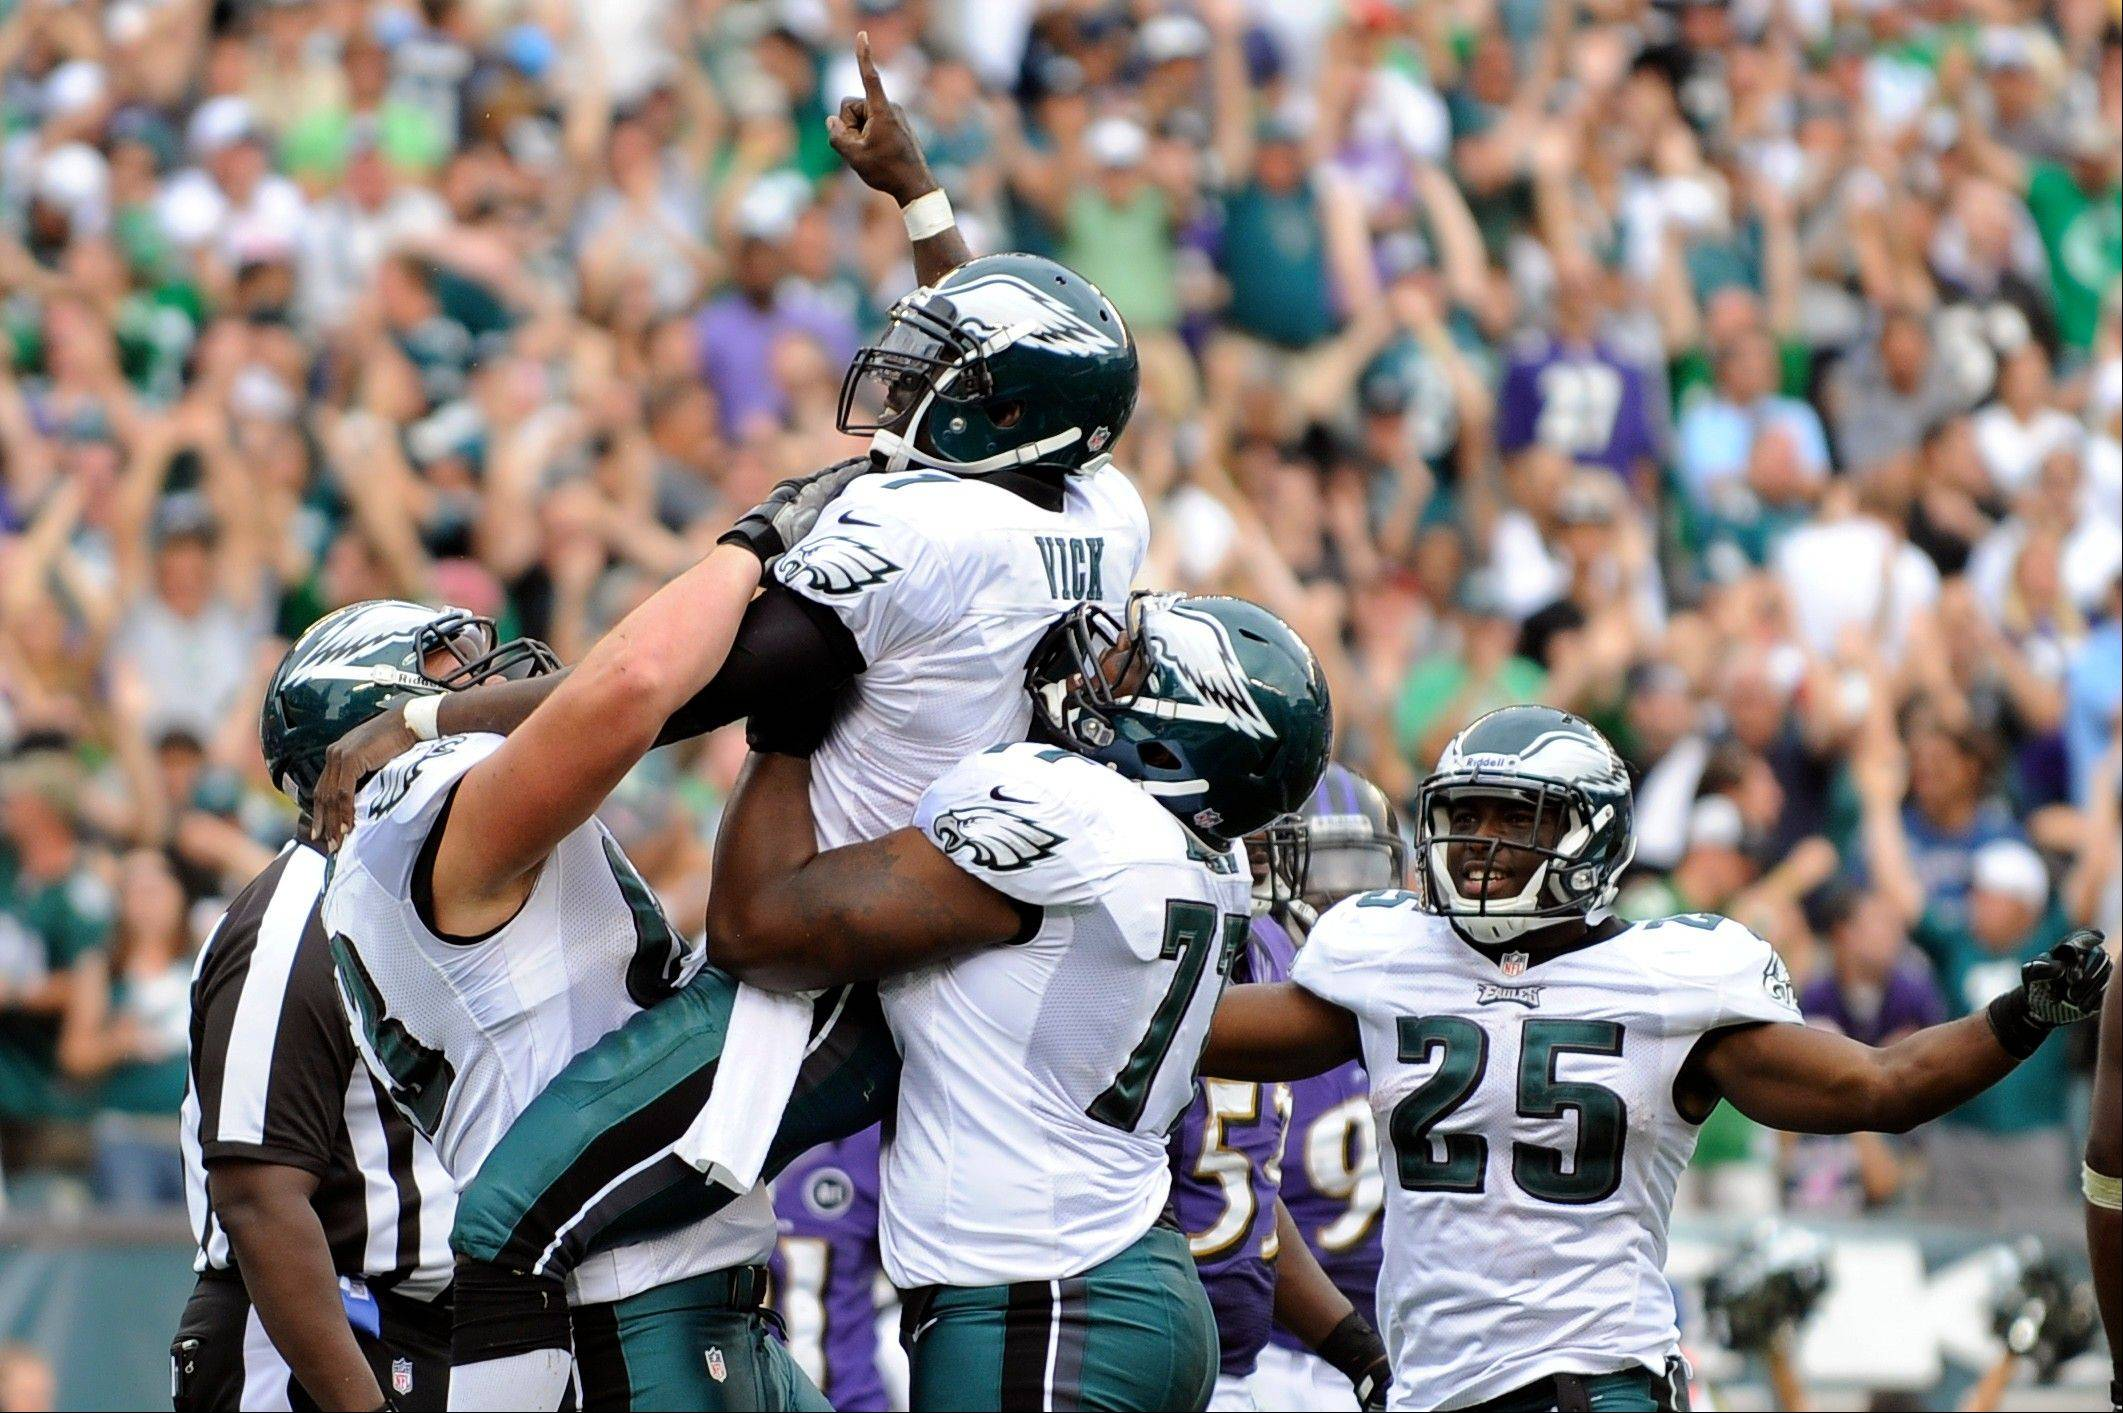 From left to right, Philadelphia Eagles' Danny Watkins, Michael Vick and Demetress Bell and LeSean McCoy celebrate after Vick's rushing touchdown in the second half against the Baltimore Ravens.